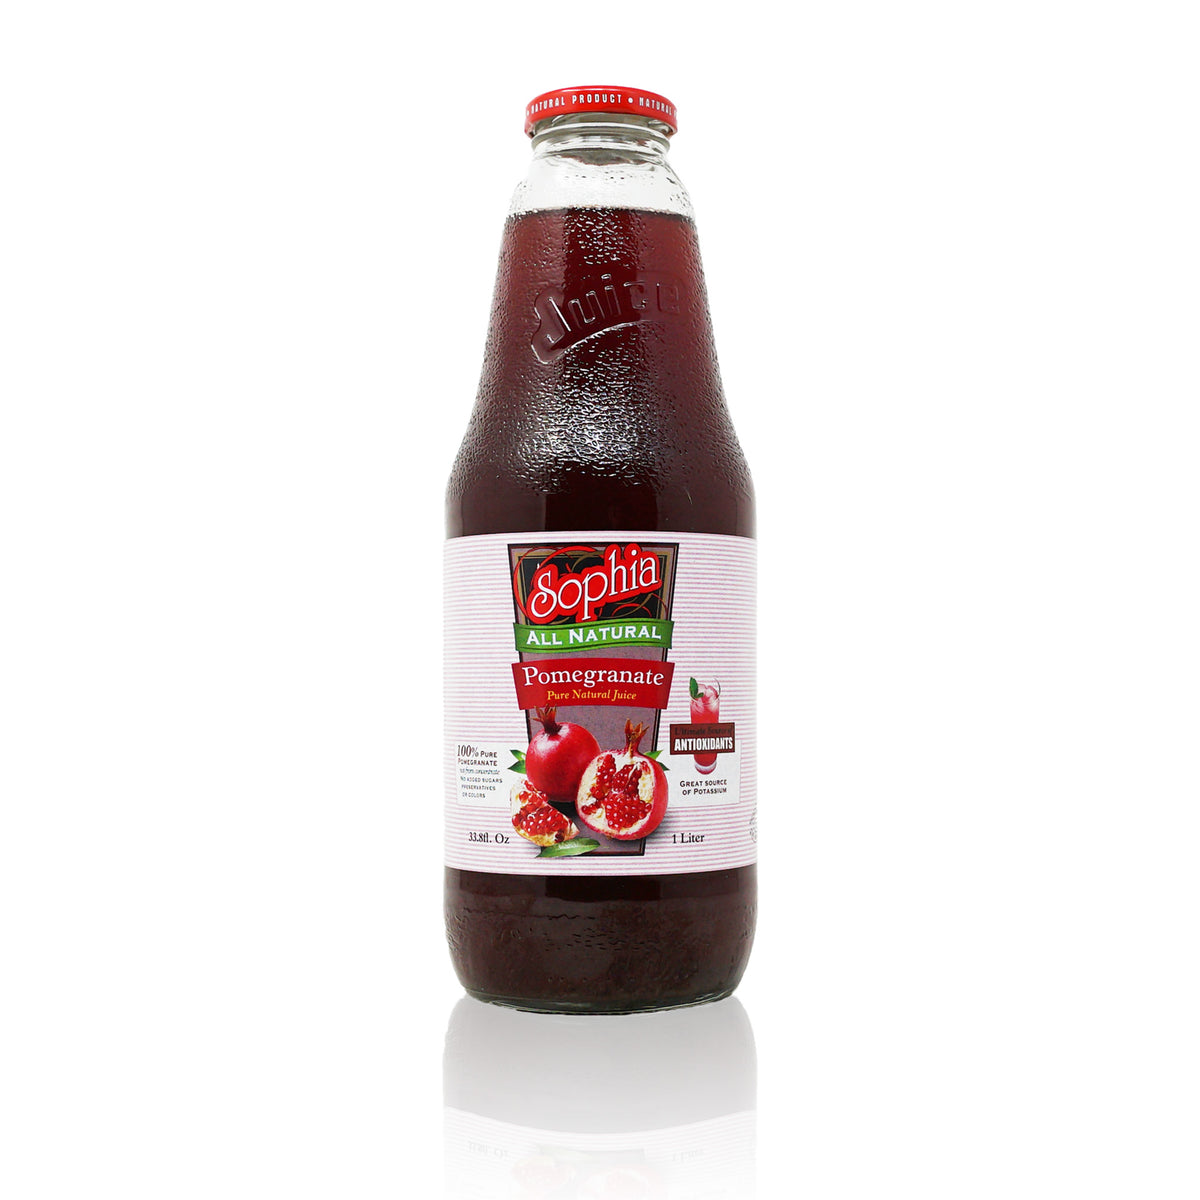 Sophia Pomegranate Juice